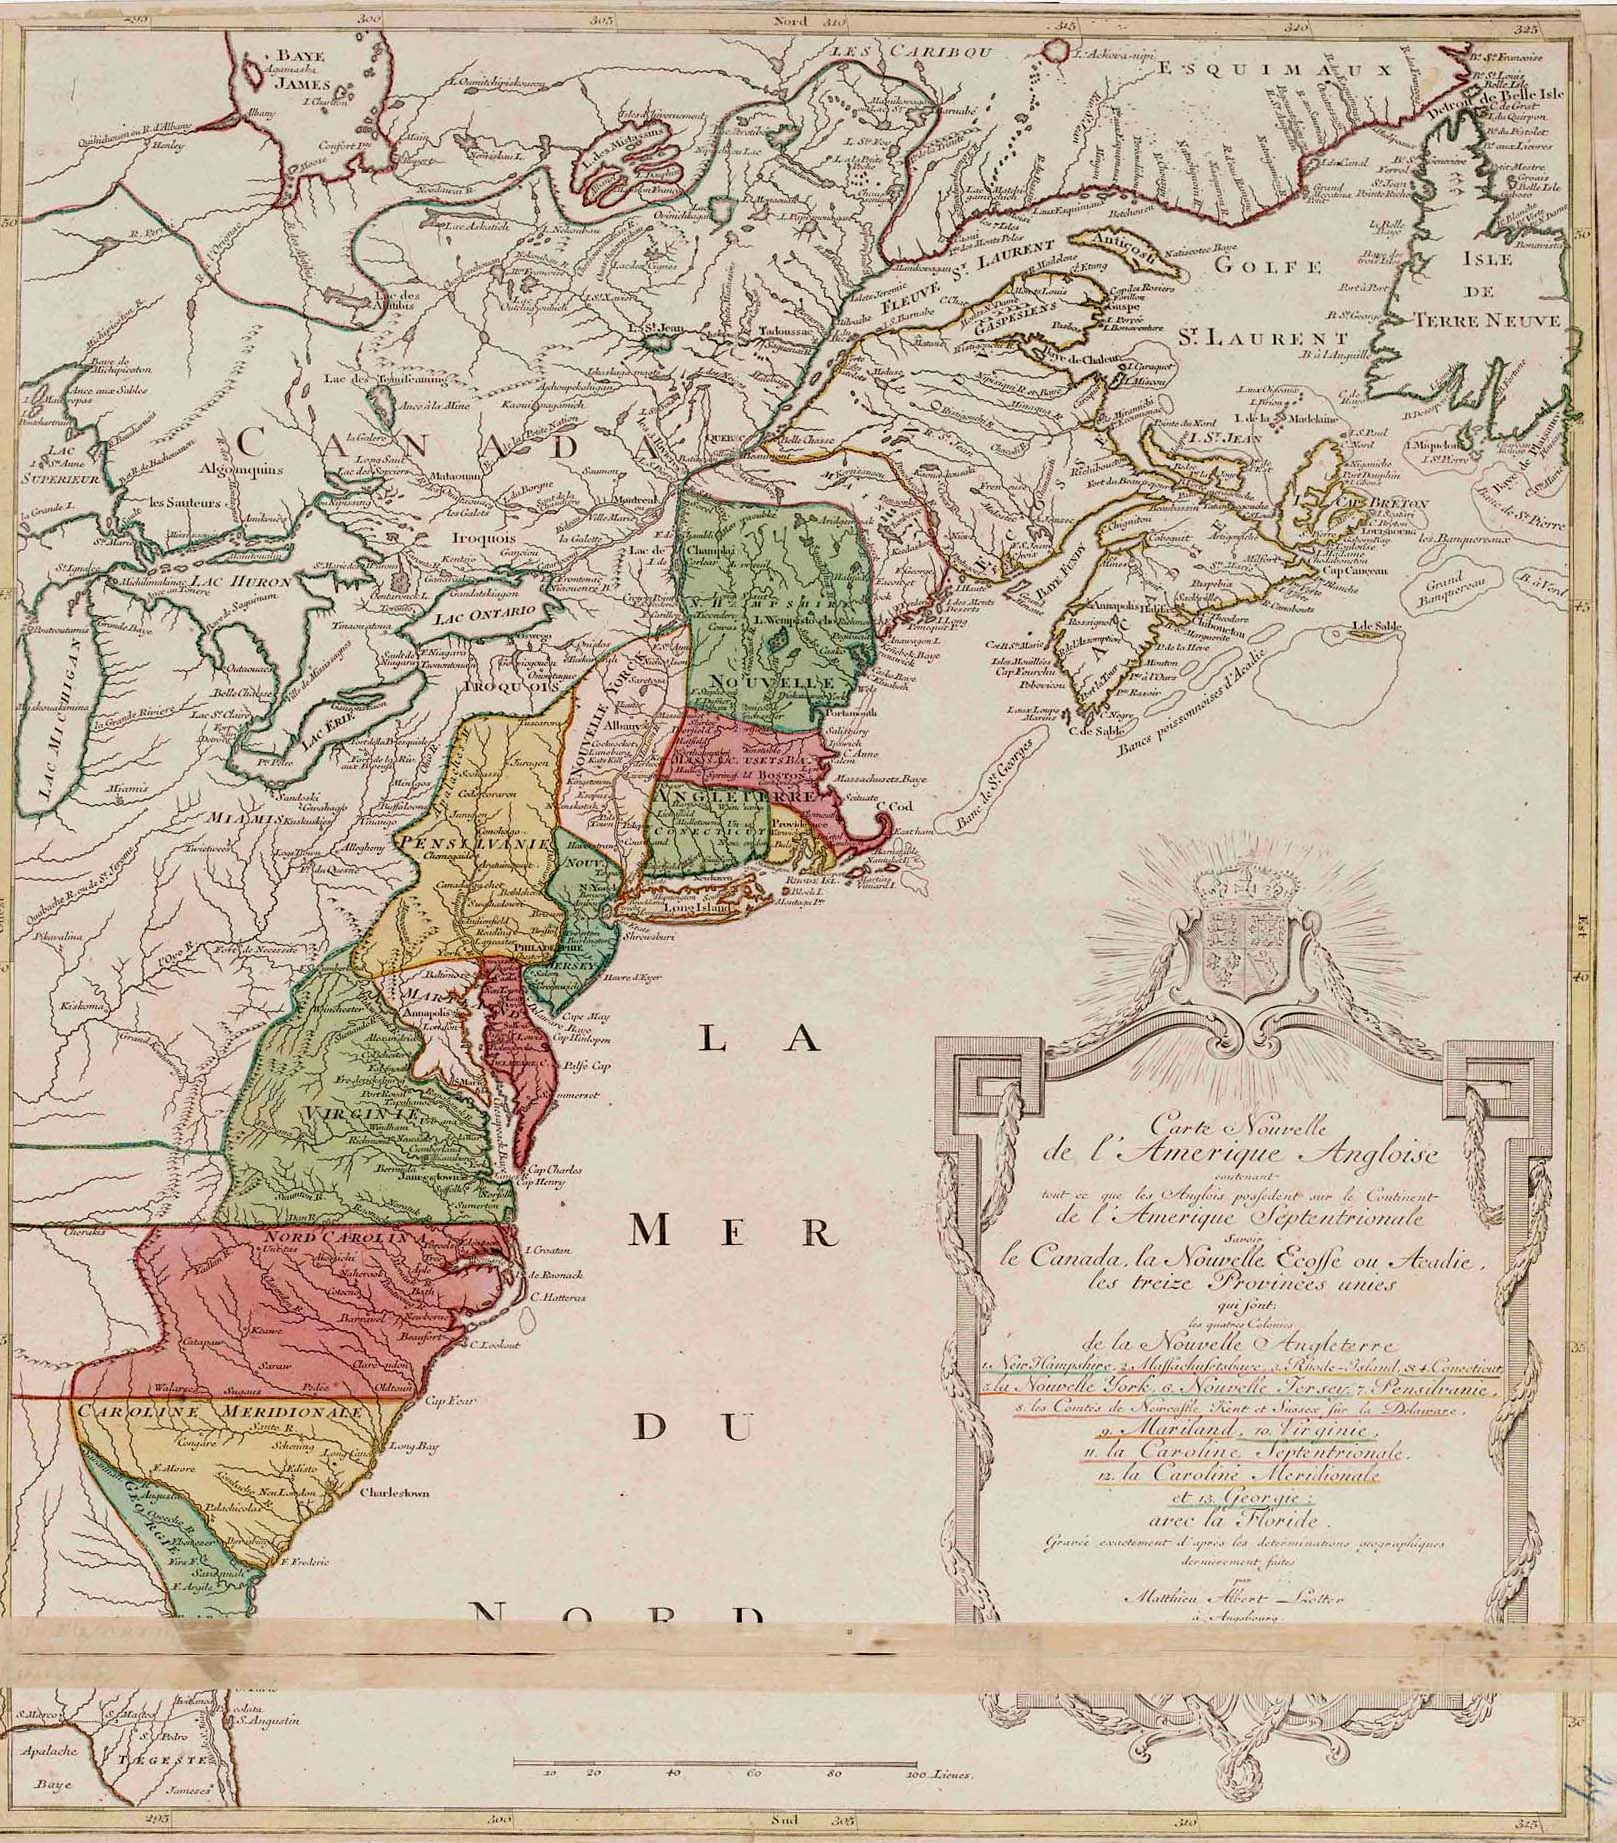 State Archives, Collections, Exhibits, Septentrionalis on map of long island 1776, map of north america 1776, map of nantucket 1776, map of manhattan 1776, map of africa 1776, map of germany 1776, map of great britain 1776, map of american colonies 1776, map of mexico 1776, map of united states 1776, map of texas 1776, map of dorchester heights 1776, map of california 1776, map of massachusetts 1776, map of philadelphia 1776, map of alaska 1776, map of canada 1776, map of russia 1776, map of trenton 1776, map of virginia 1776,